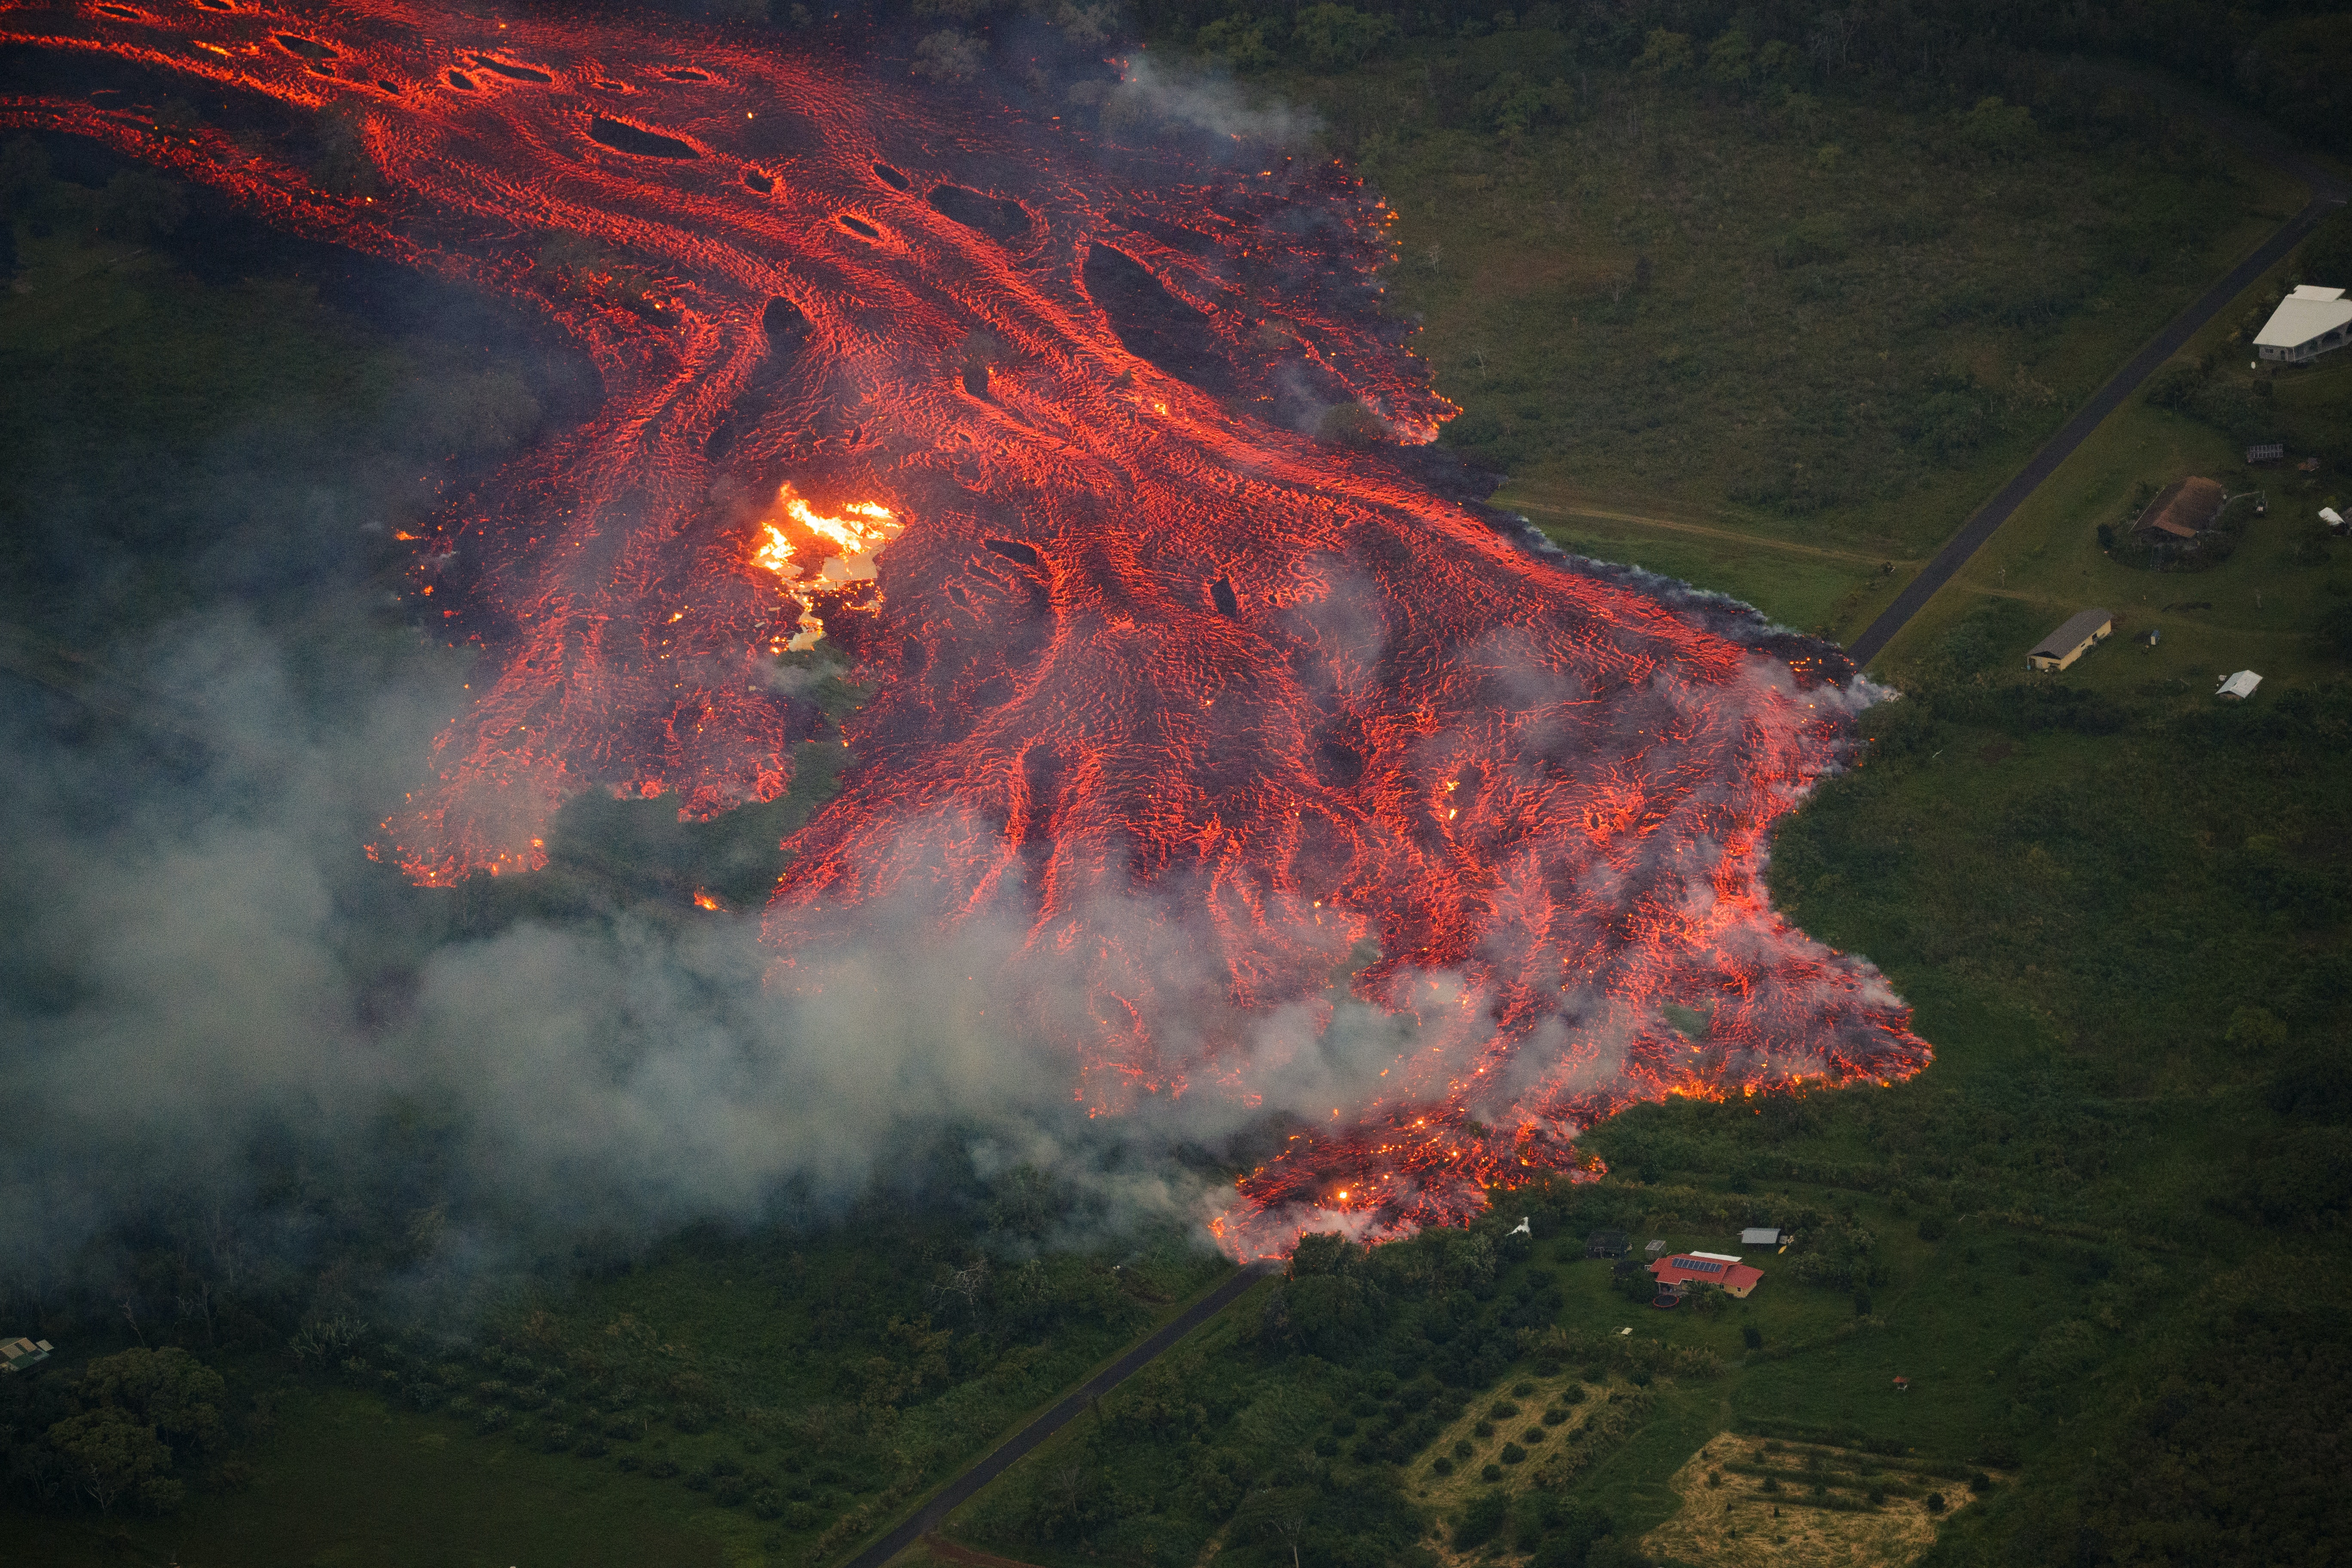 Lava in Hawai'i is reaching the ocean, creating new land but also corrosive acid mist